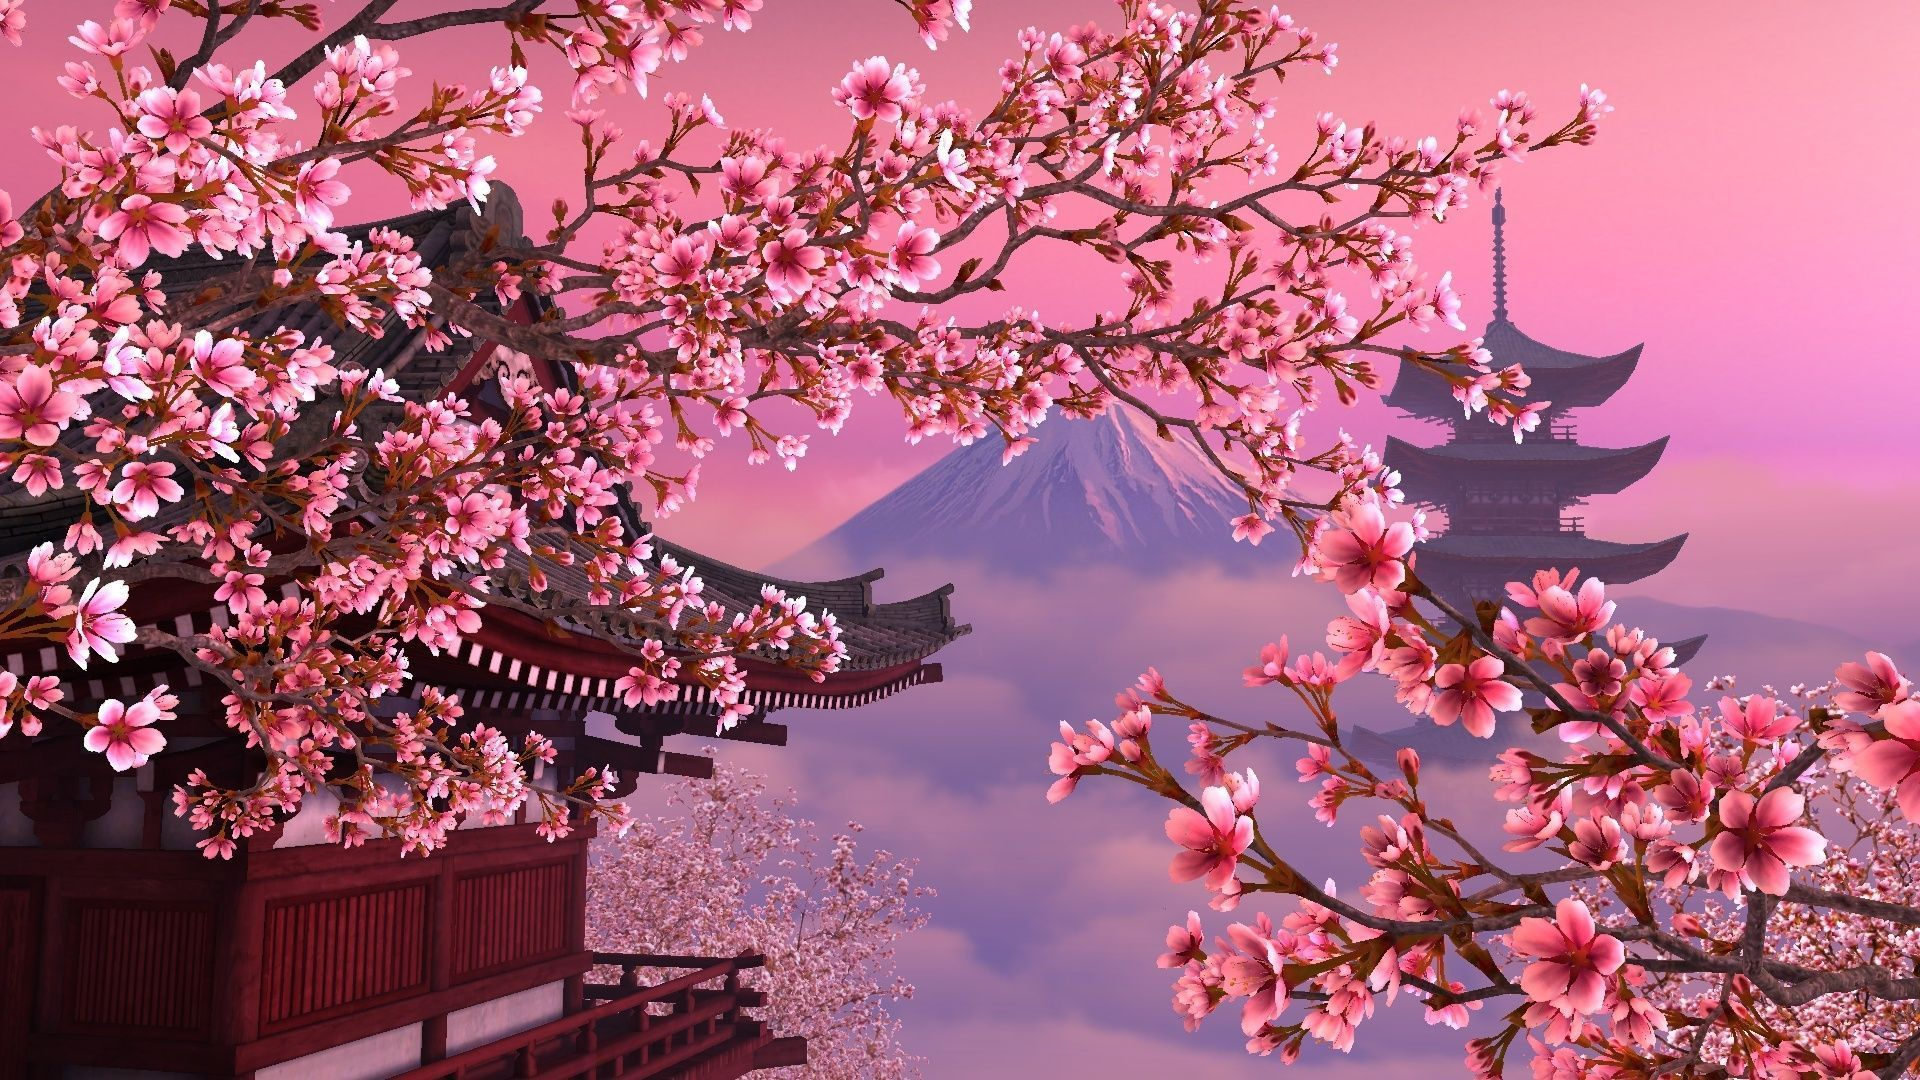 View Cherry Blossoms Wallpaper Aesthetic Wallpapers